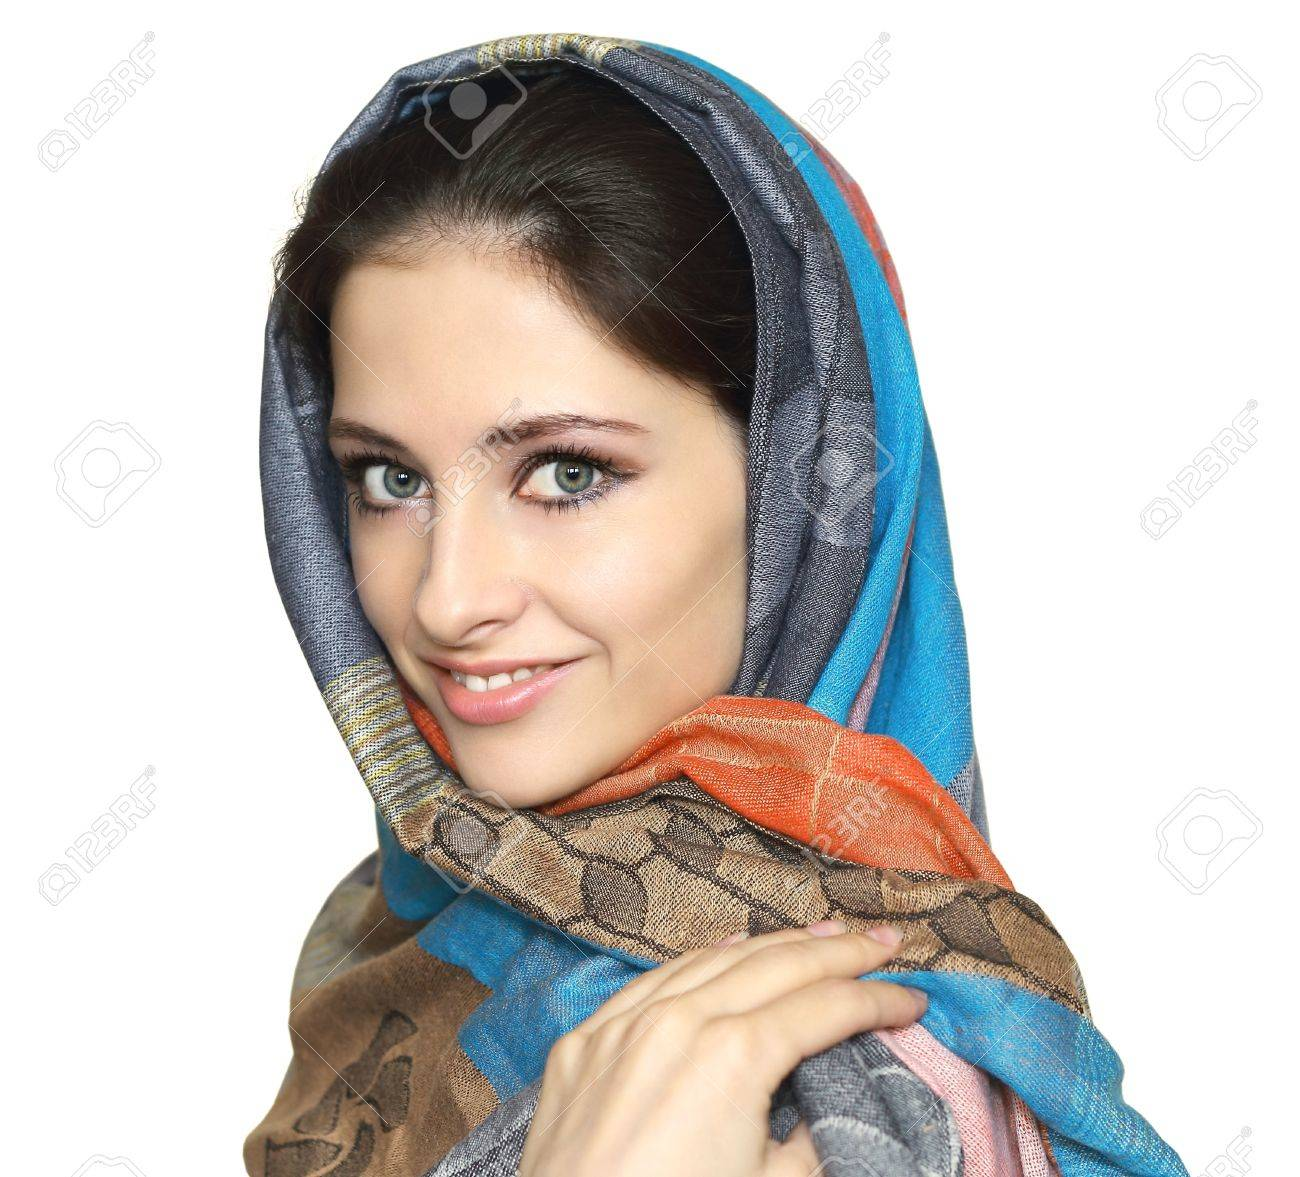 Beautiful smiling woman in colorful shawl isolated on white background  Close portrait Stock Photo - 15762214